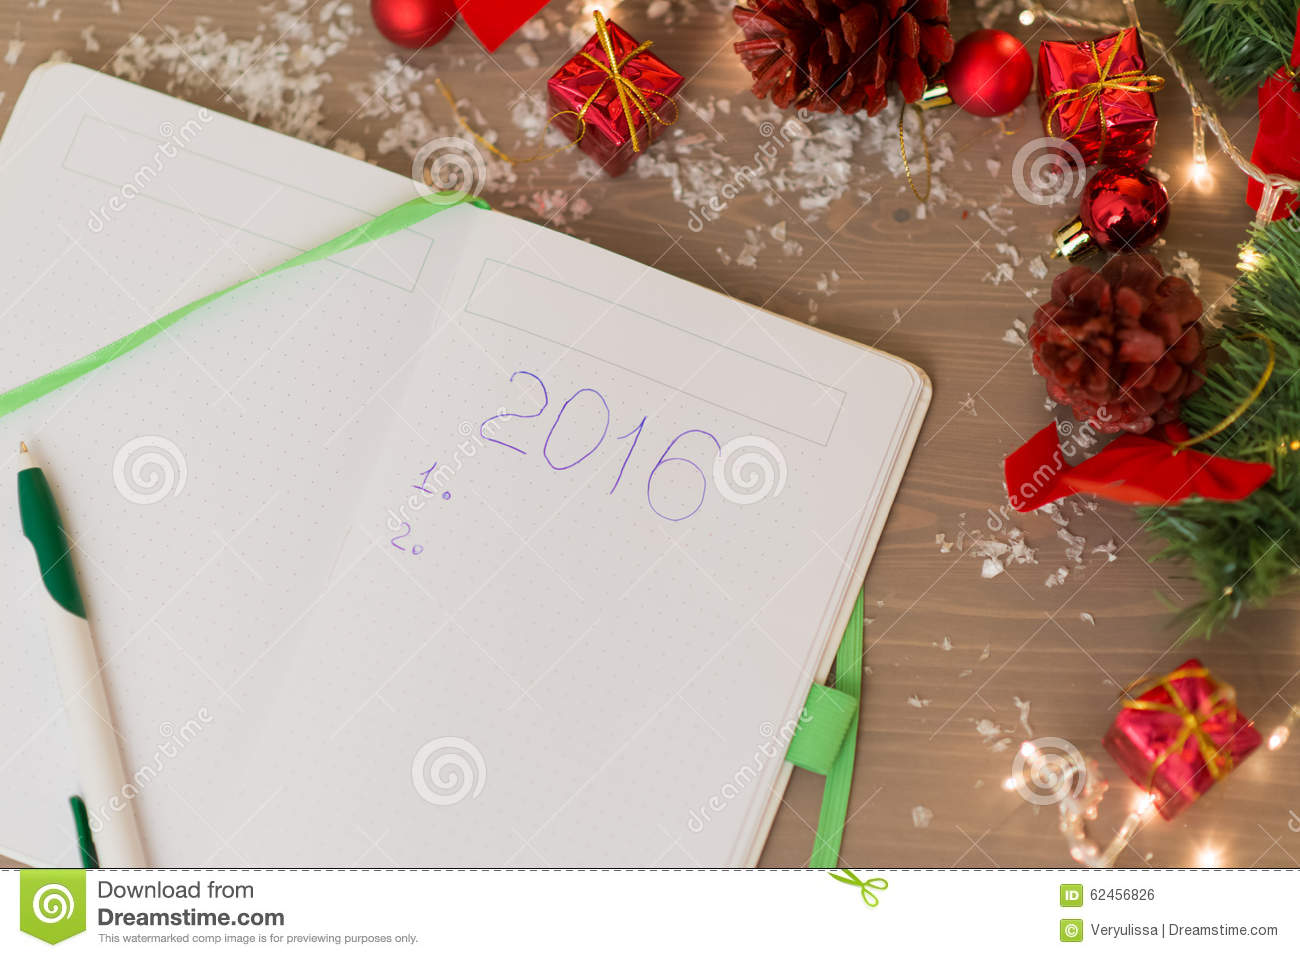 2016 Written At Notebook With Christmas Decorations Stock Photo ...